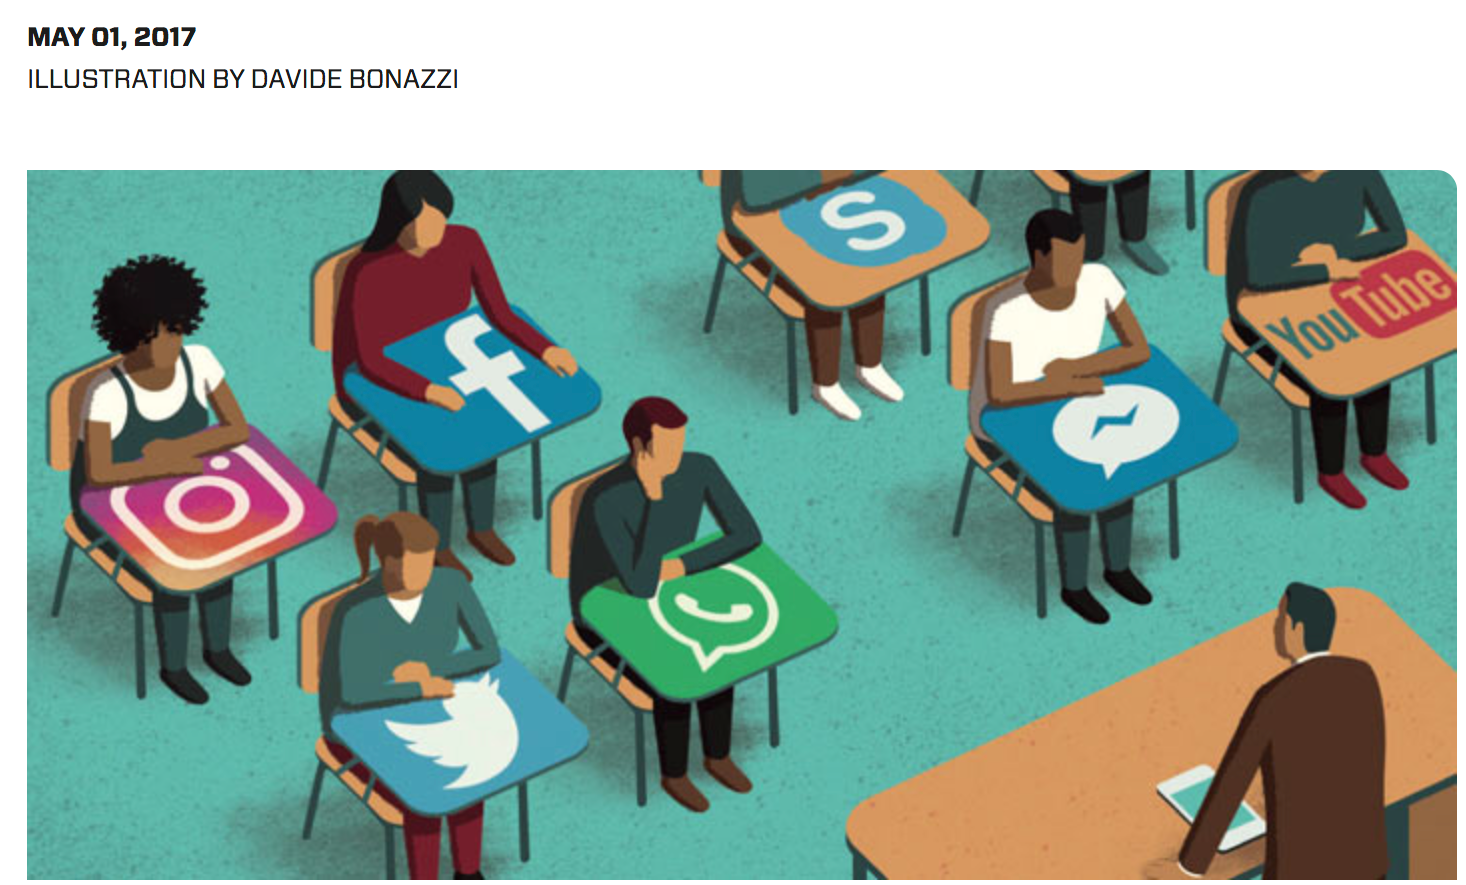 Why Not Social Media - SURVEY SHEDS LIGHT ON HOW FACULTY ARE USING SOCIAL MEDIARead More